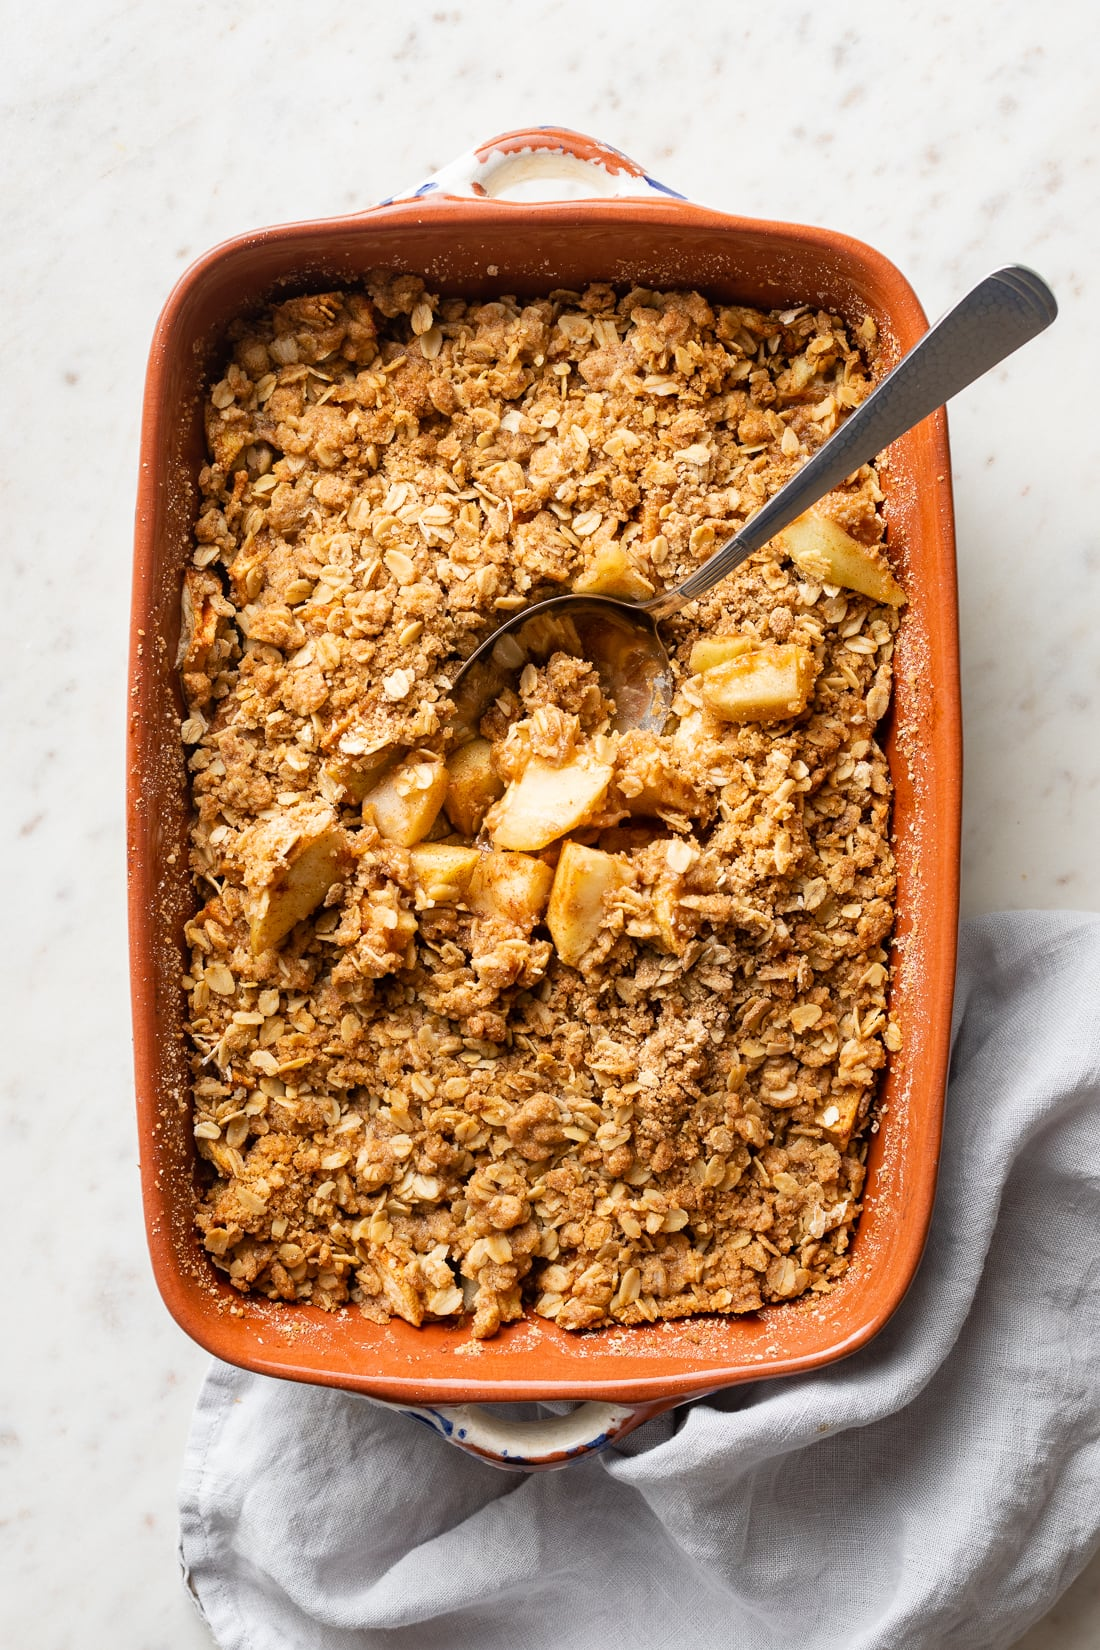 Baked pan of old fashioned apple crisp, with a serving spoon ready to dive in.